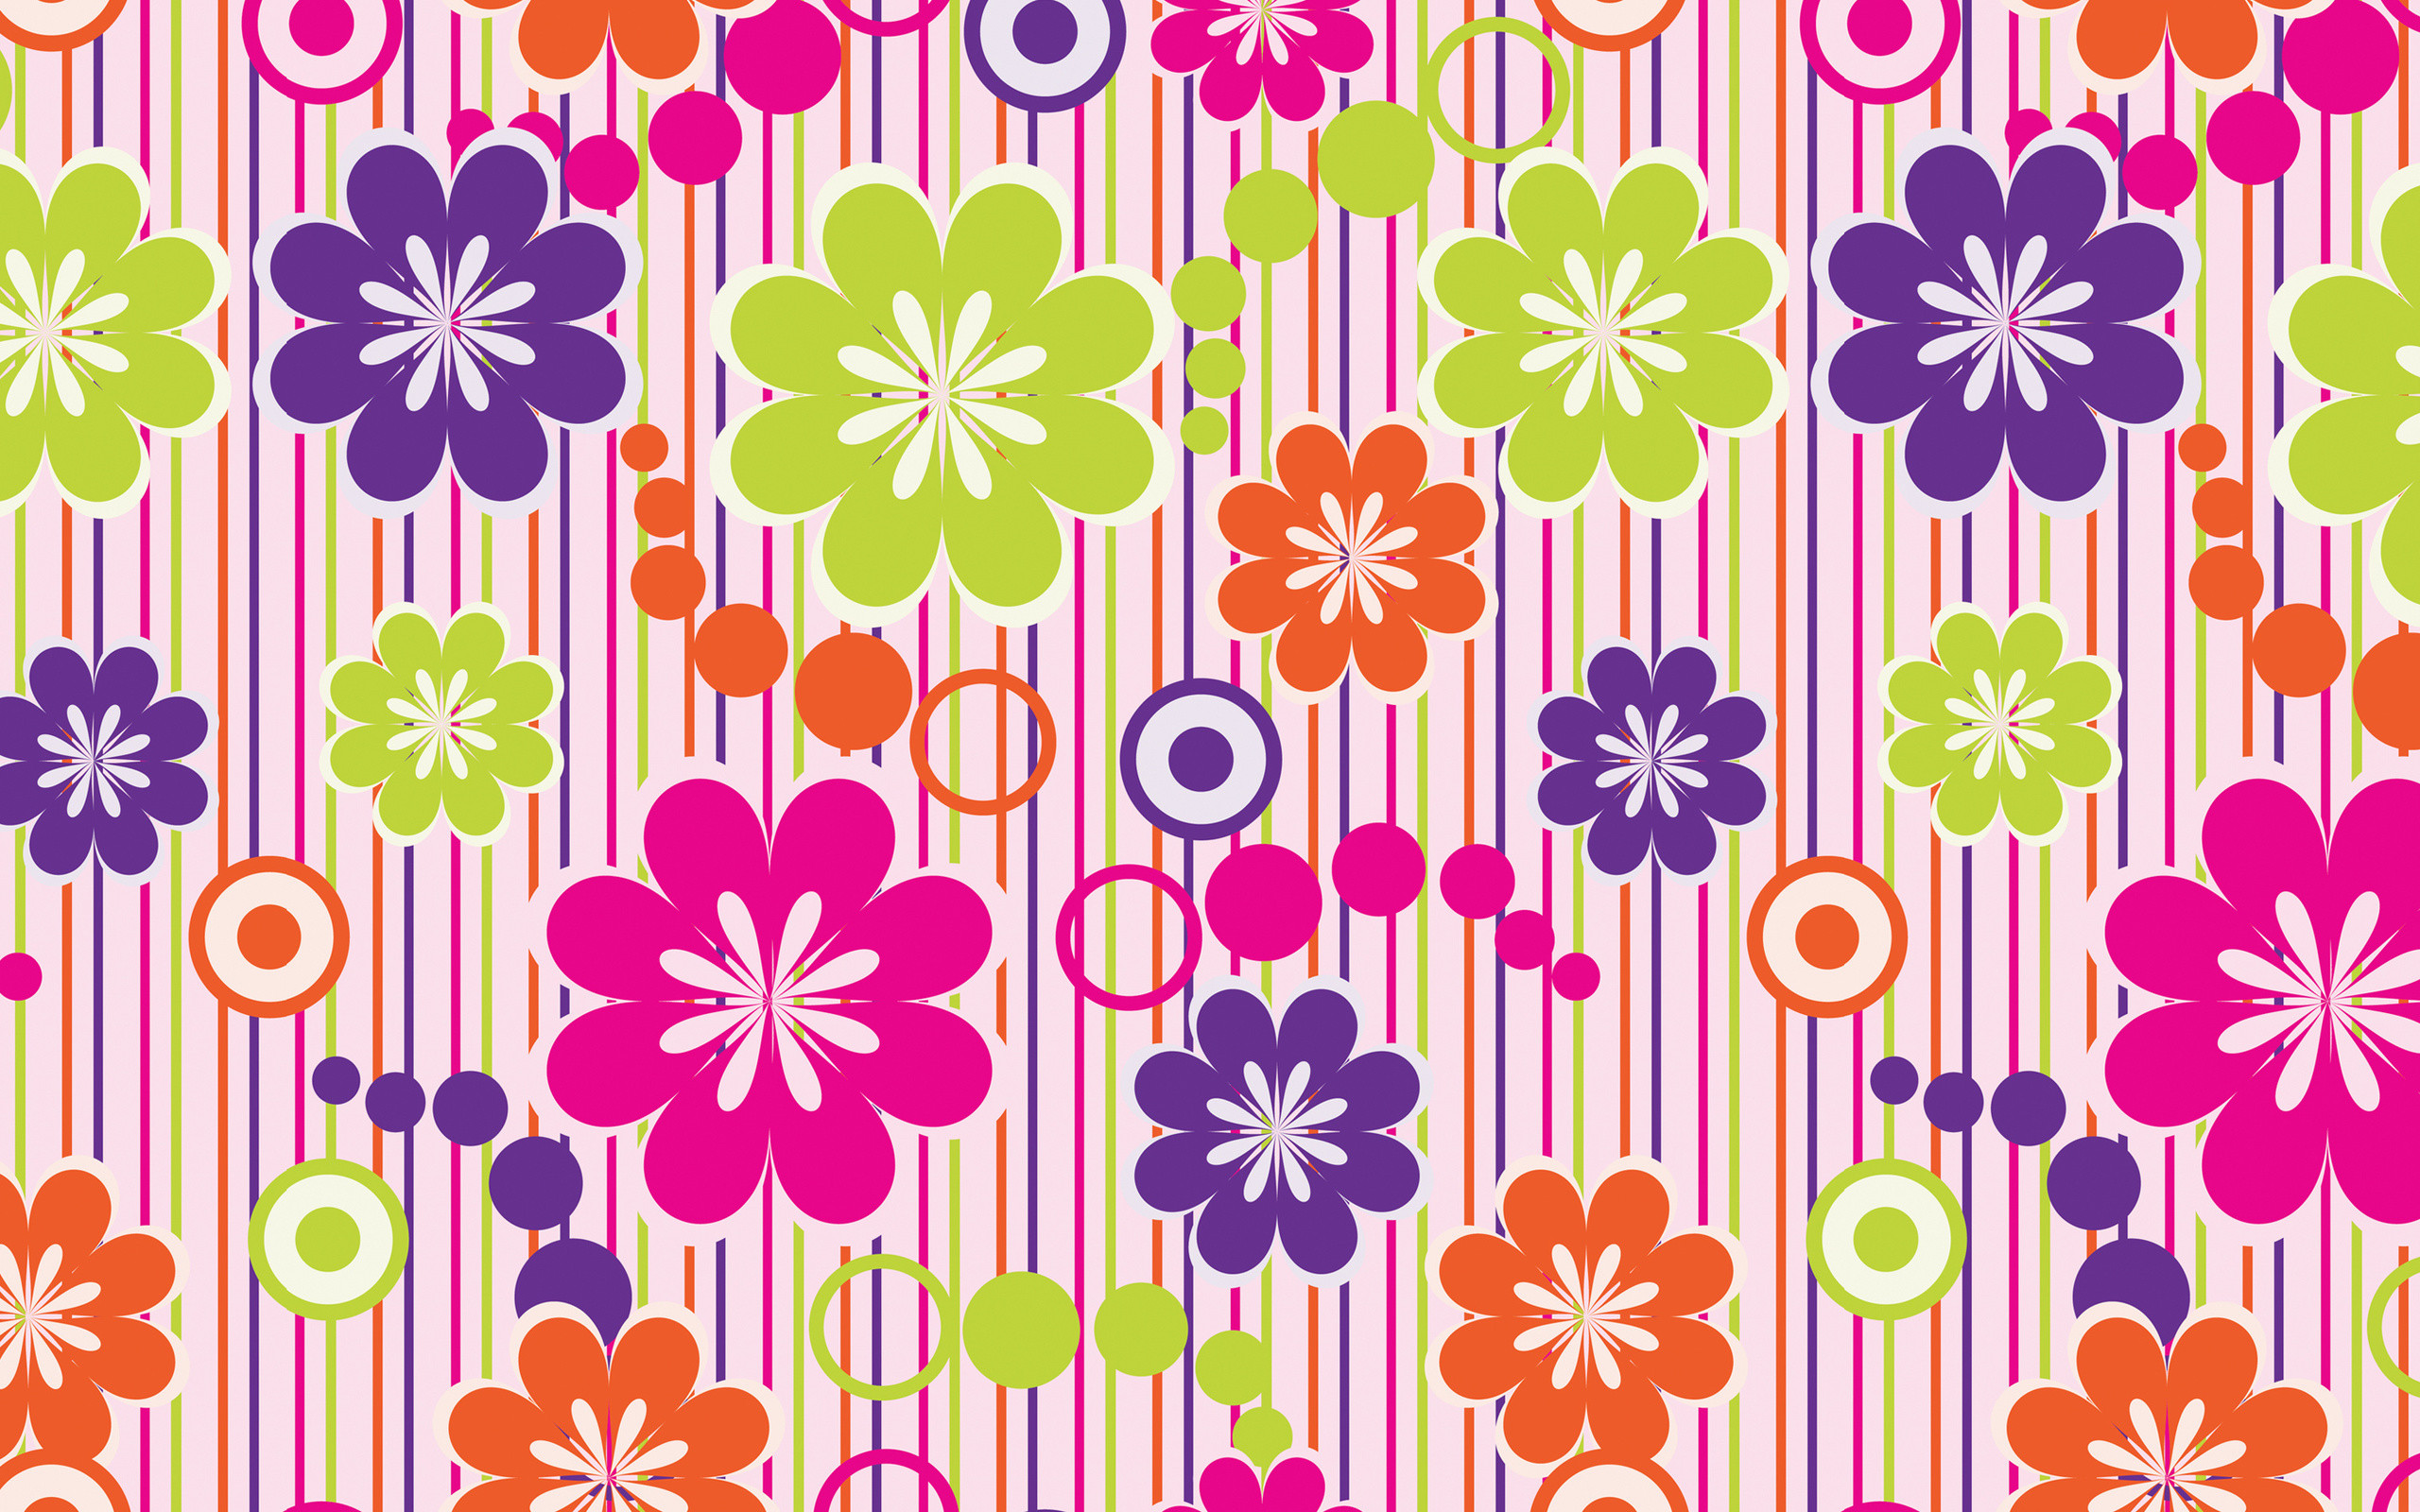 Res: 2560x1600, Abstract colorful flowers wallpaper picture.